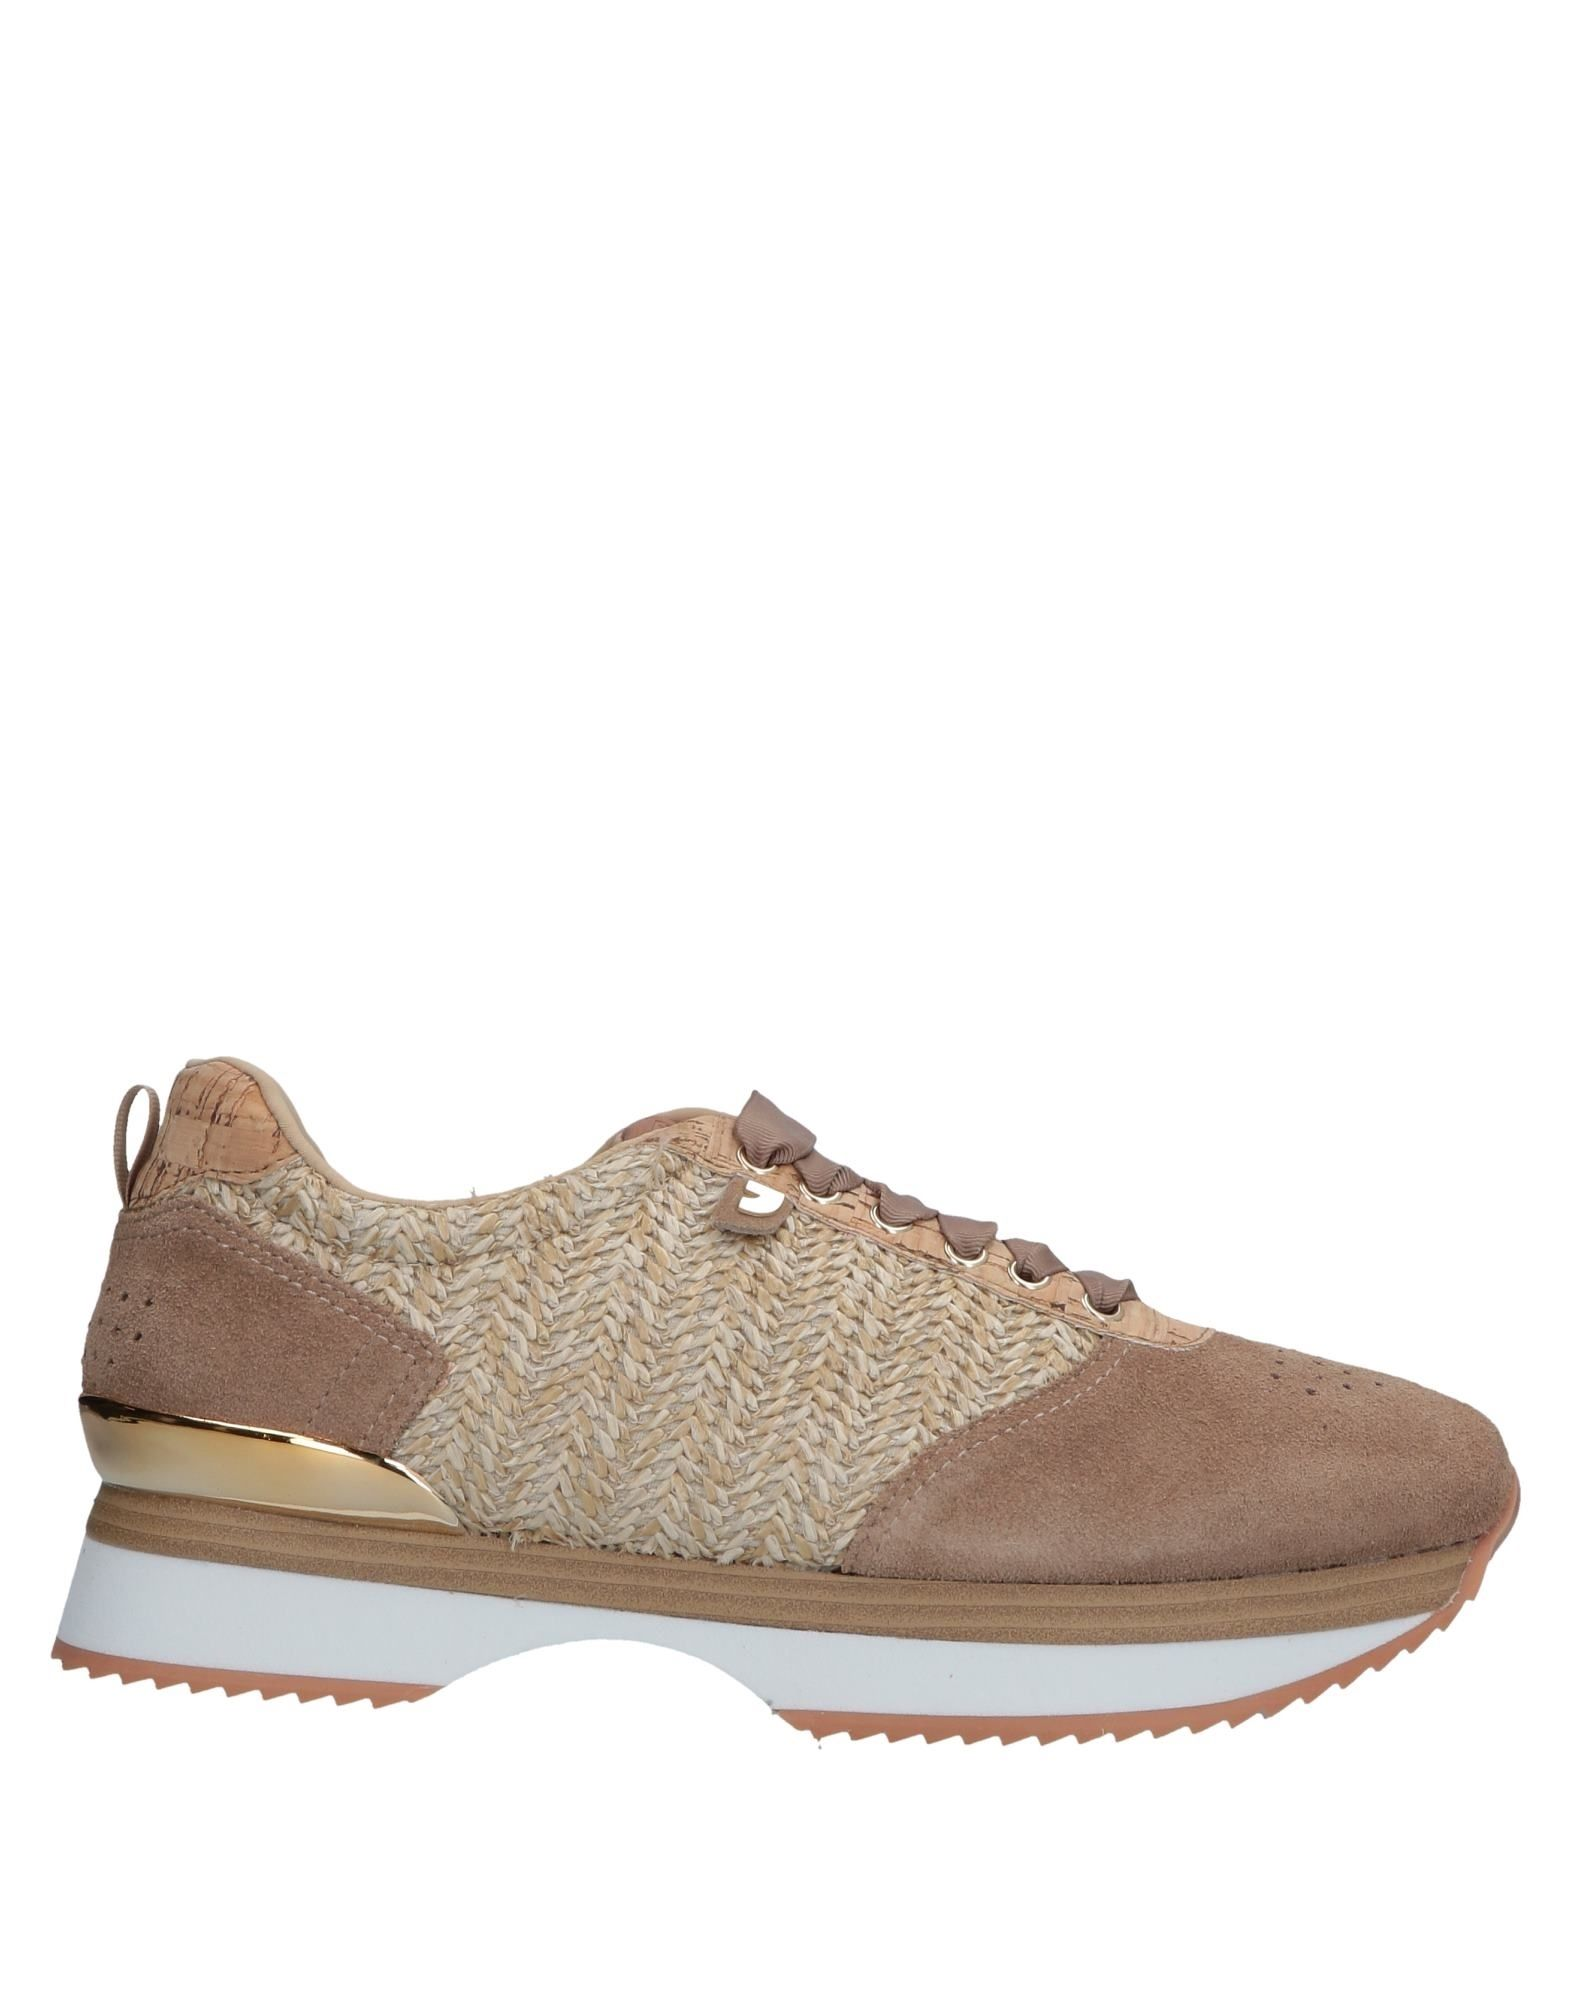 Gioseppo Sneakers - Women Gioseppo Sneakers online on    United Kingdom - 11575823SG a6a555